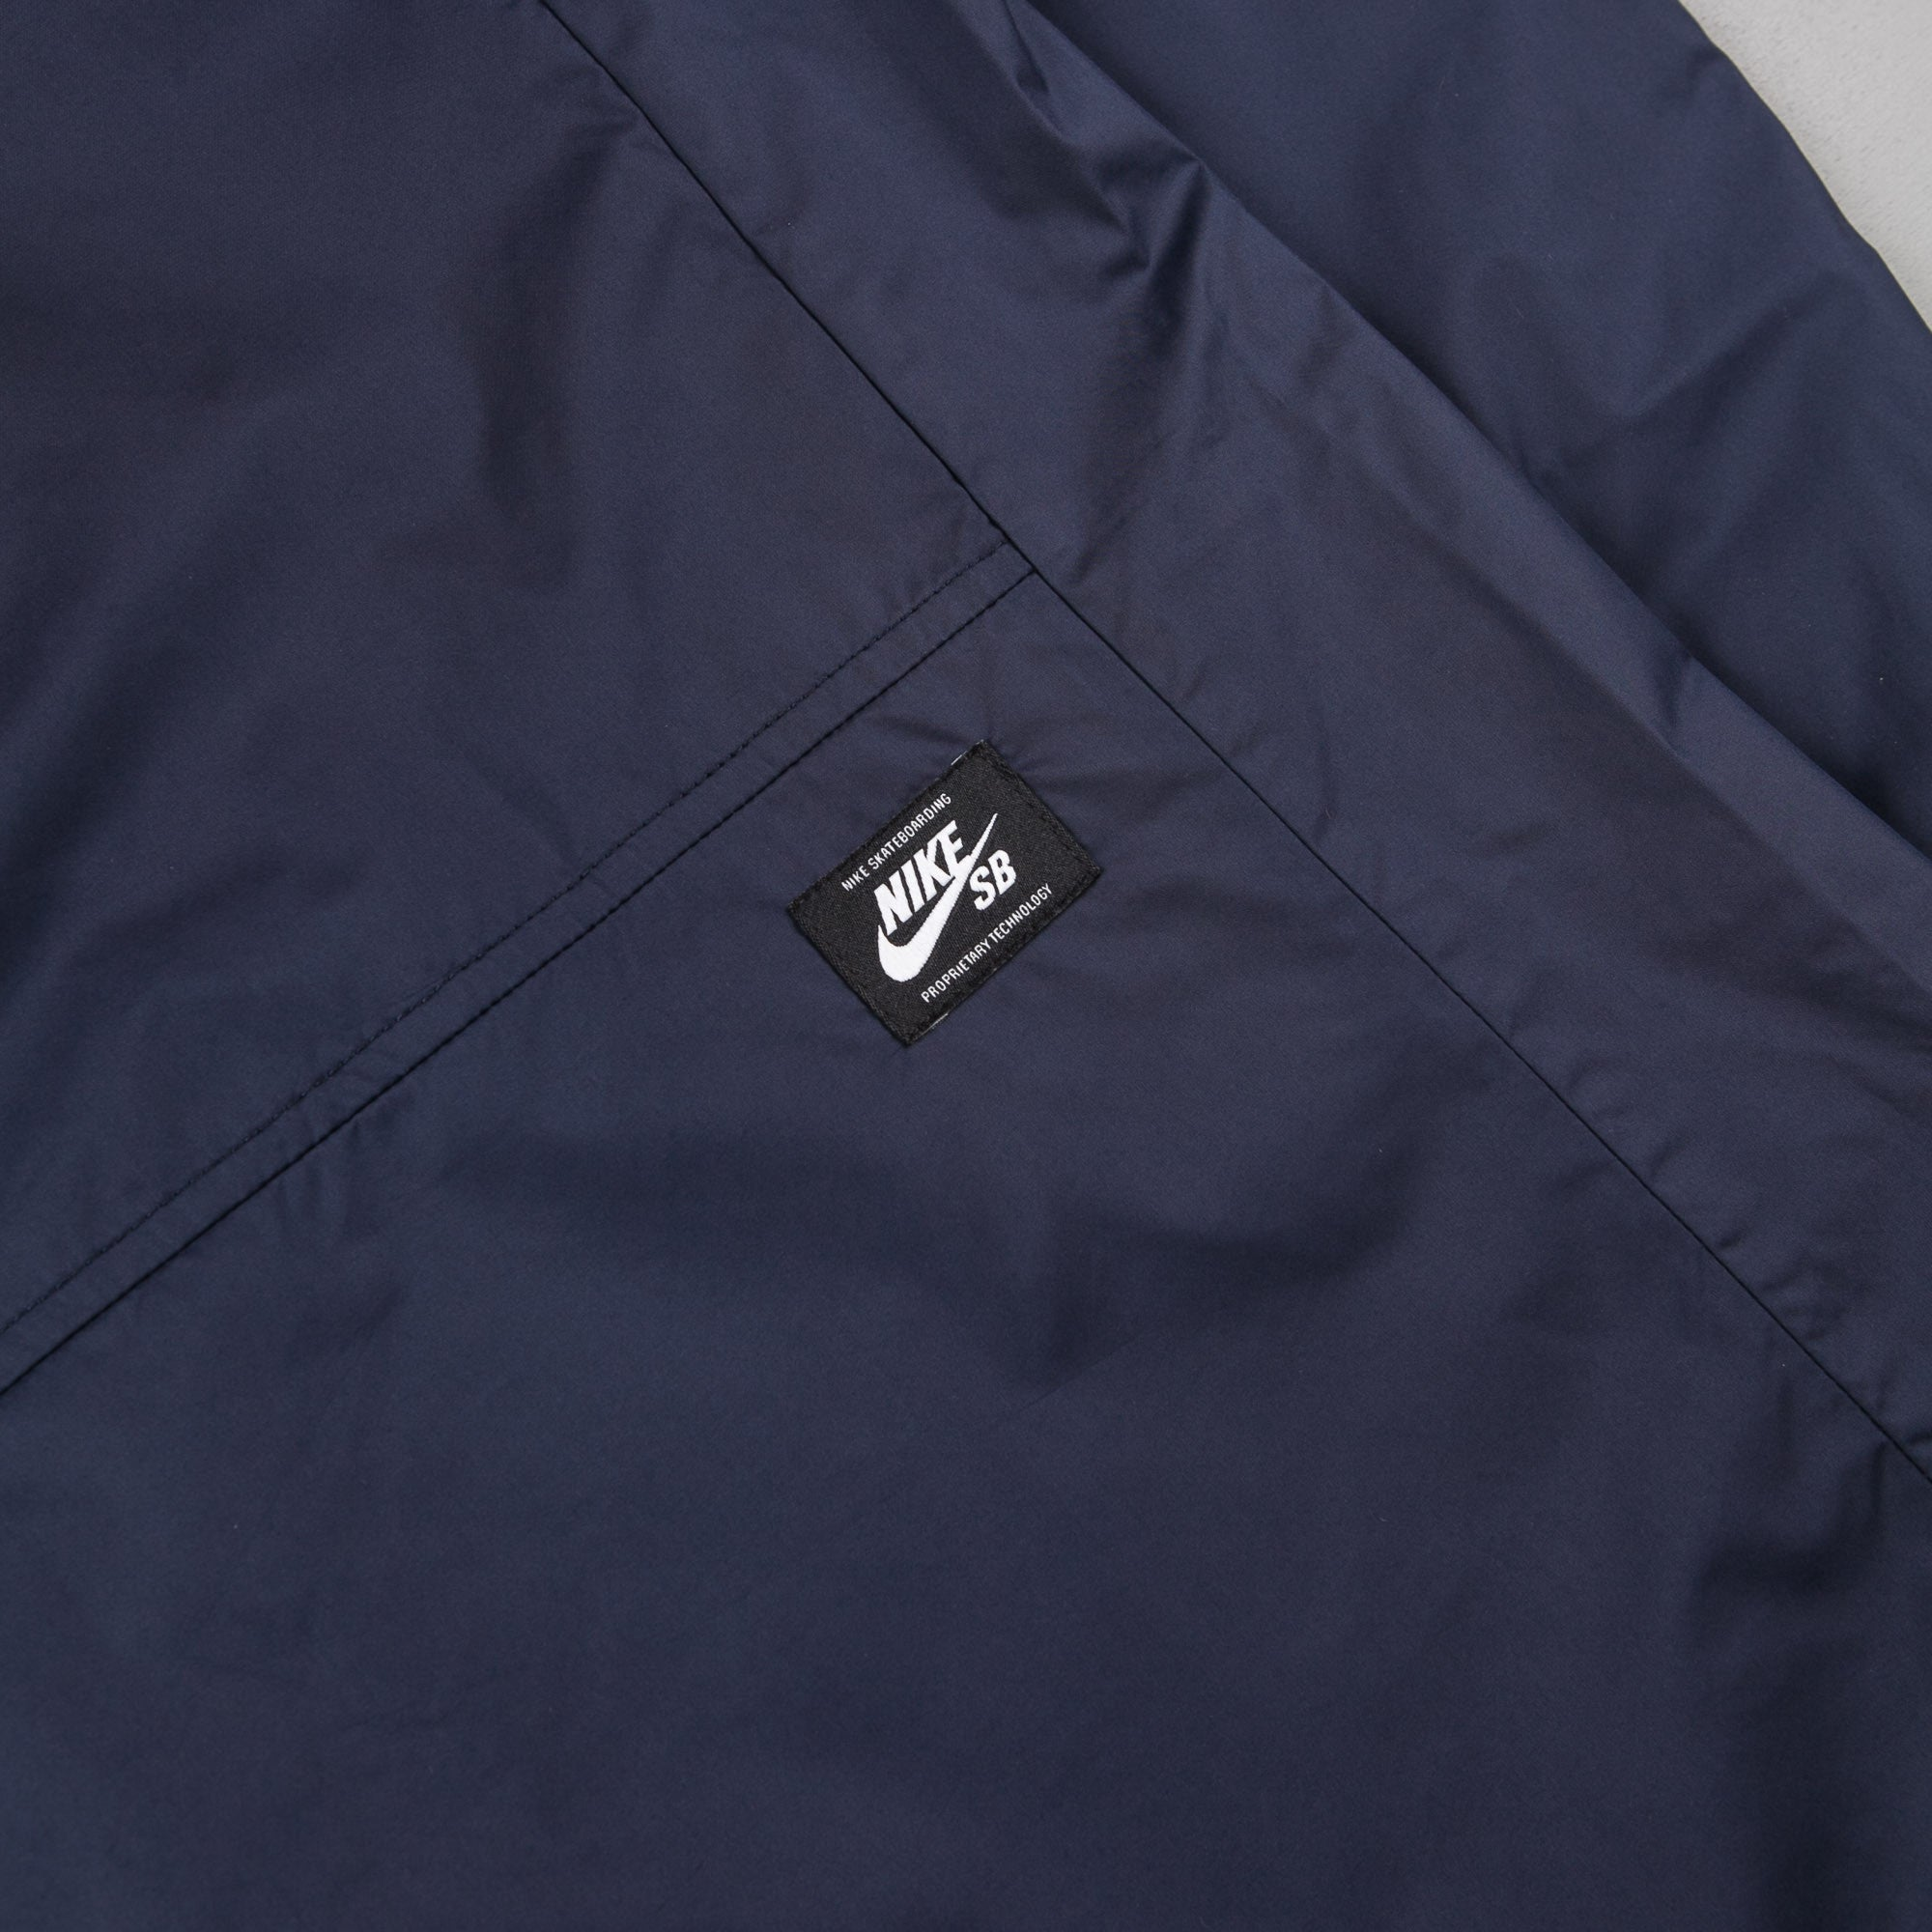 Nike SB Shield Jacket - Obsidian / White